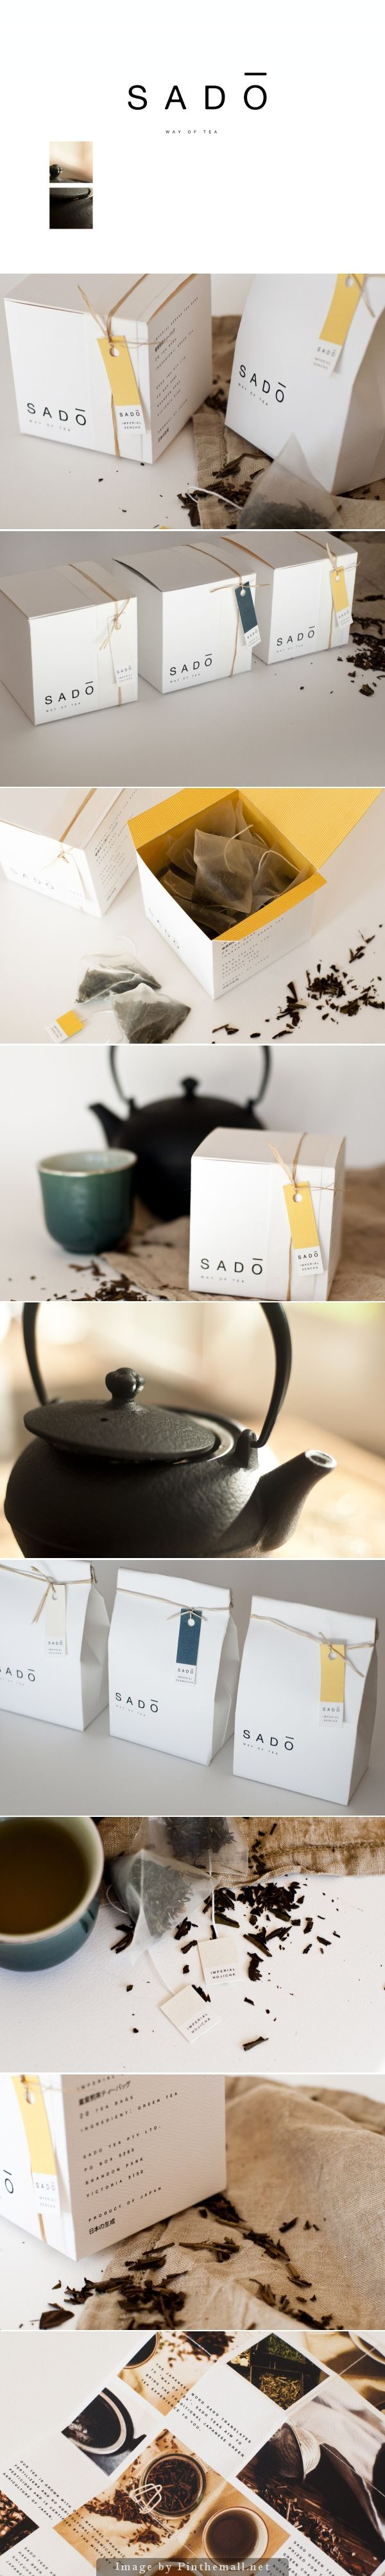 Sado Tea, Japanese words for 'way of tea'. #Packaging #Design